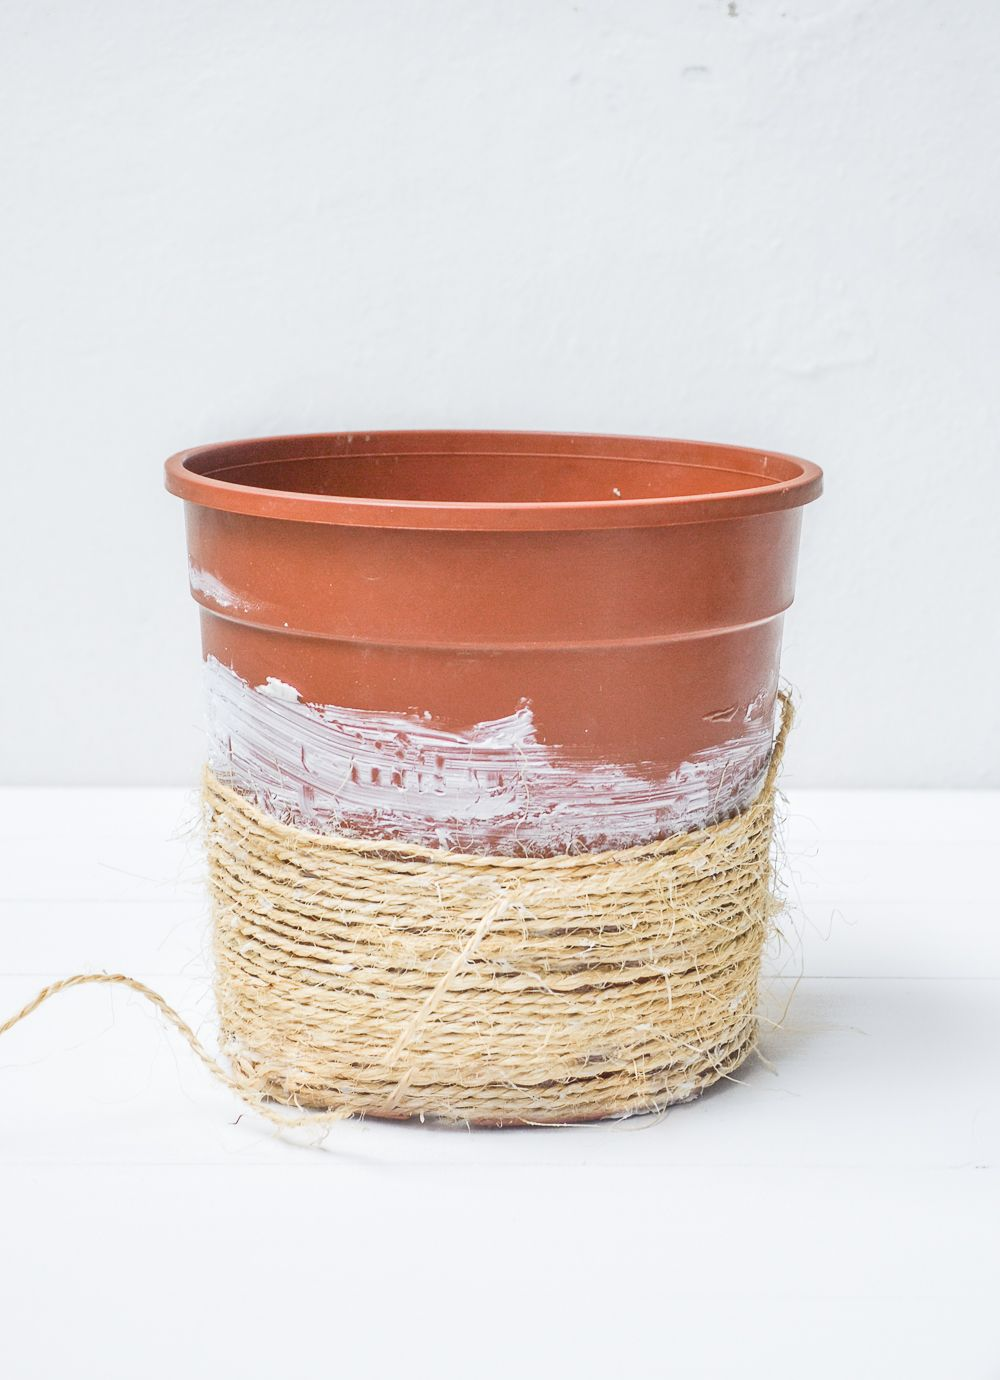 Cool Sisal Planter Continue wrapping